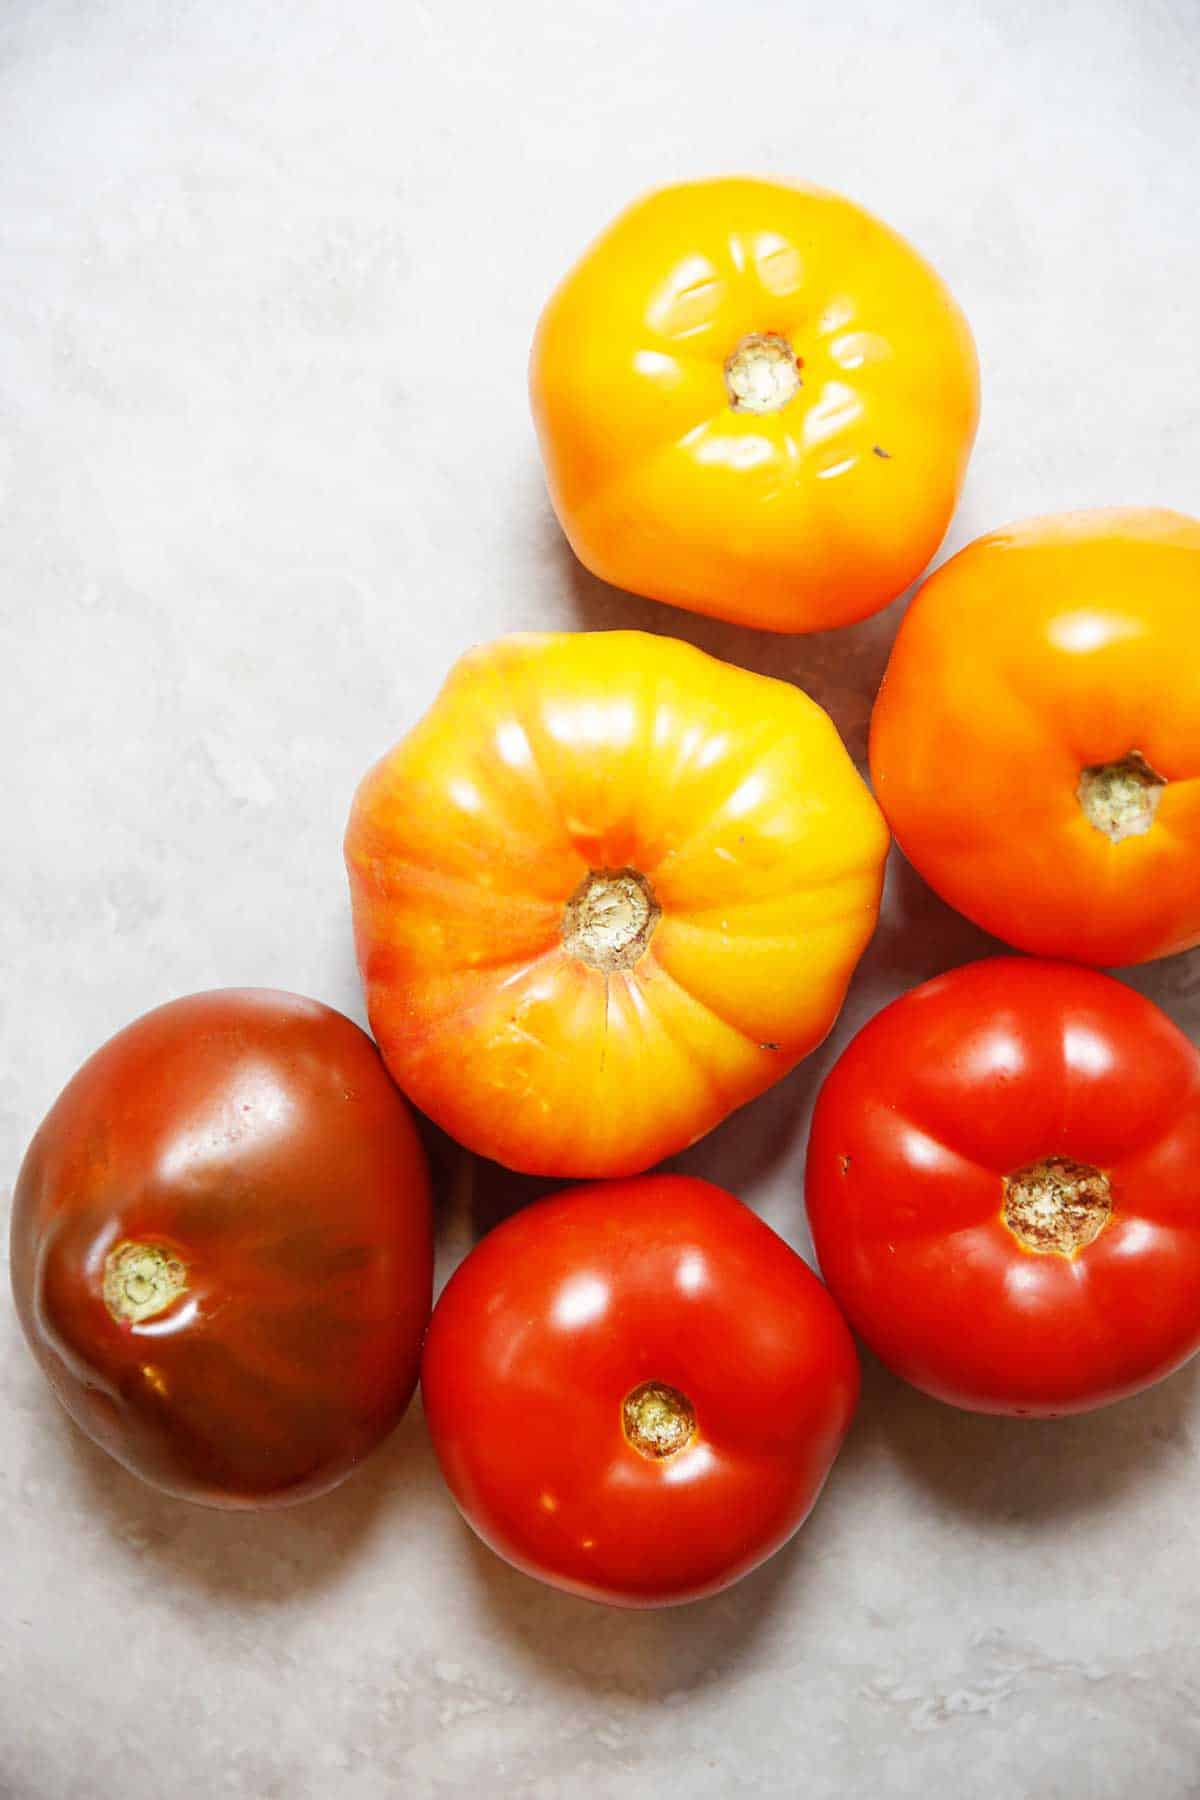 How To Make Fresh Tomato Sauce With Summer Tomatoes